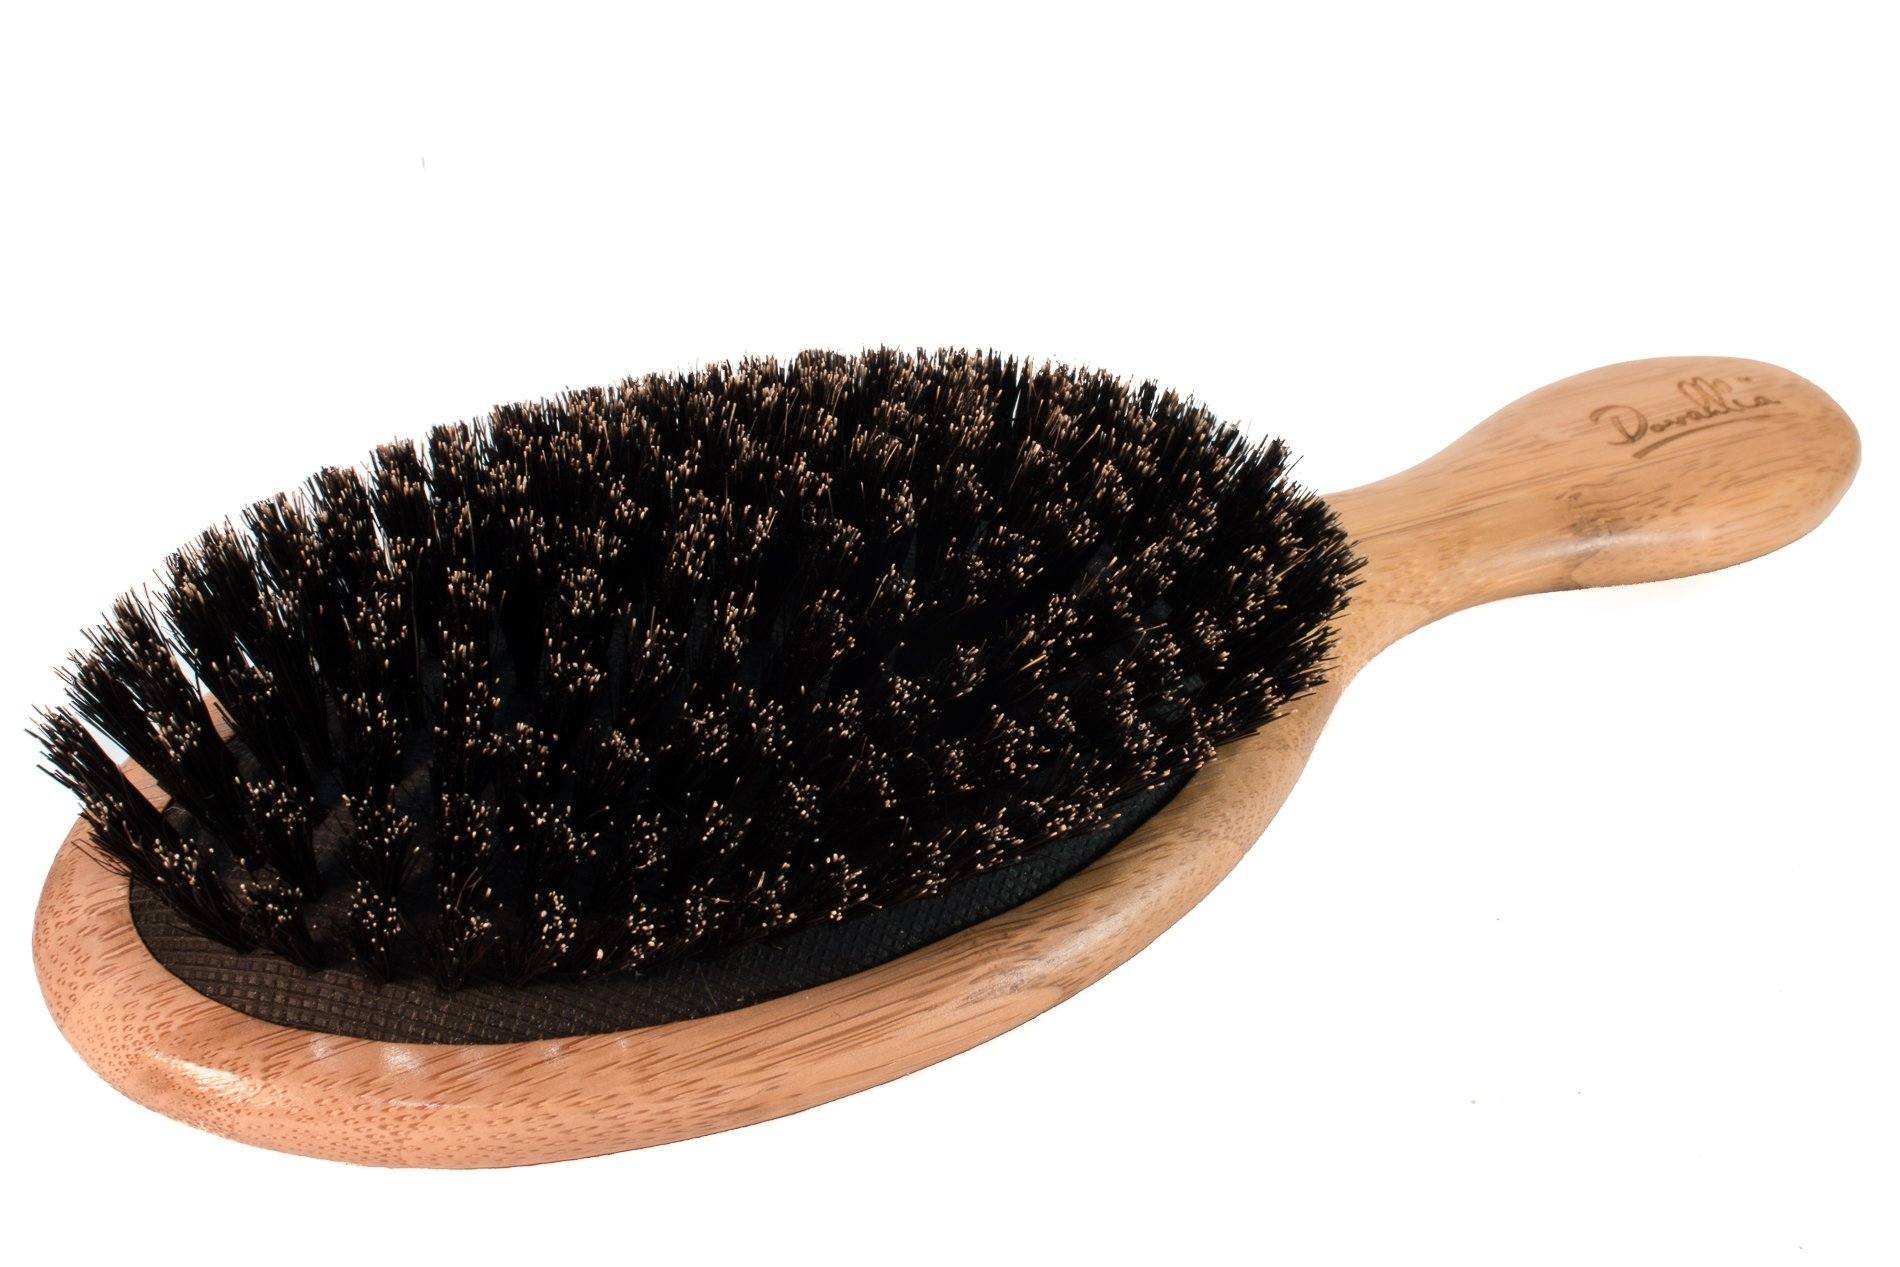 Boar Bristle Hair Brush Set for Women and Men - Designed for Thin and Normal Hair - Adds Shine and Improves Hair Texture - Wood Comb and Gift Bag Included (black) by Dovahlia (Image #3)